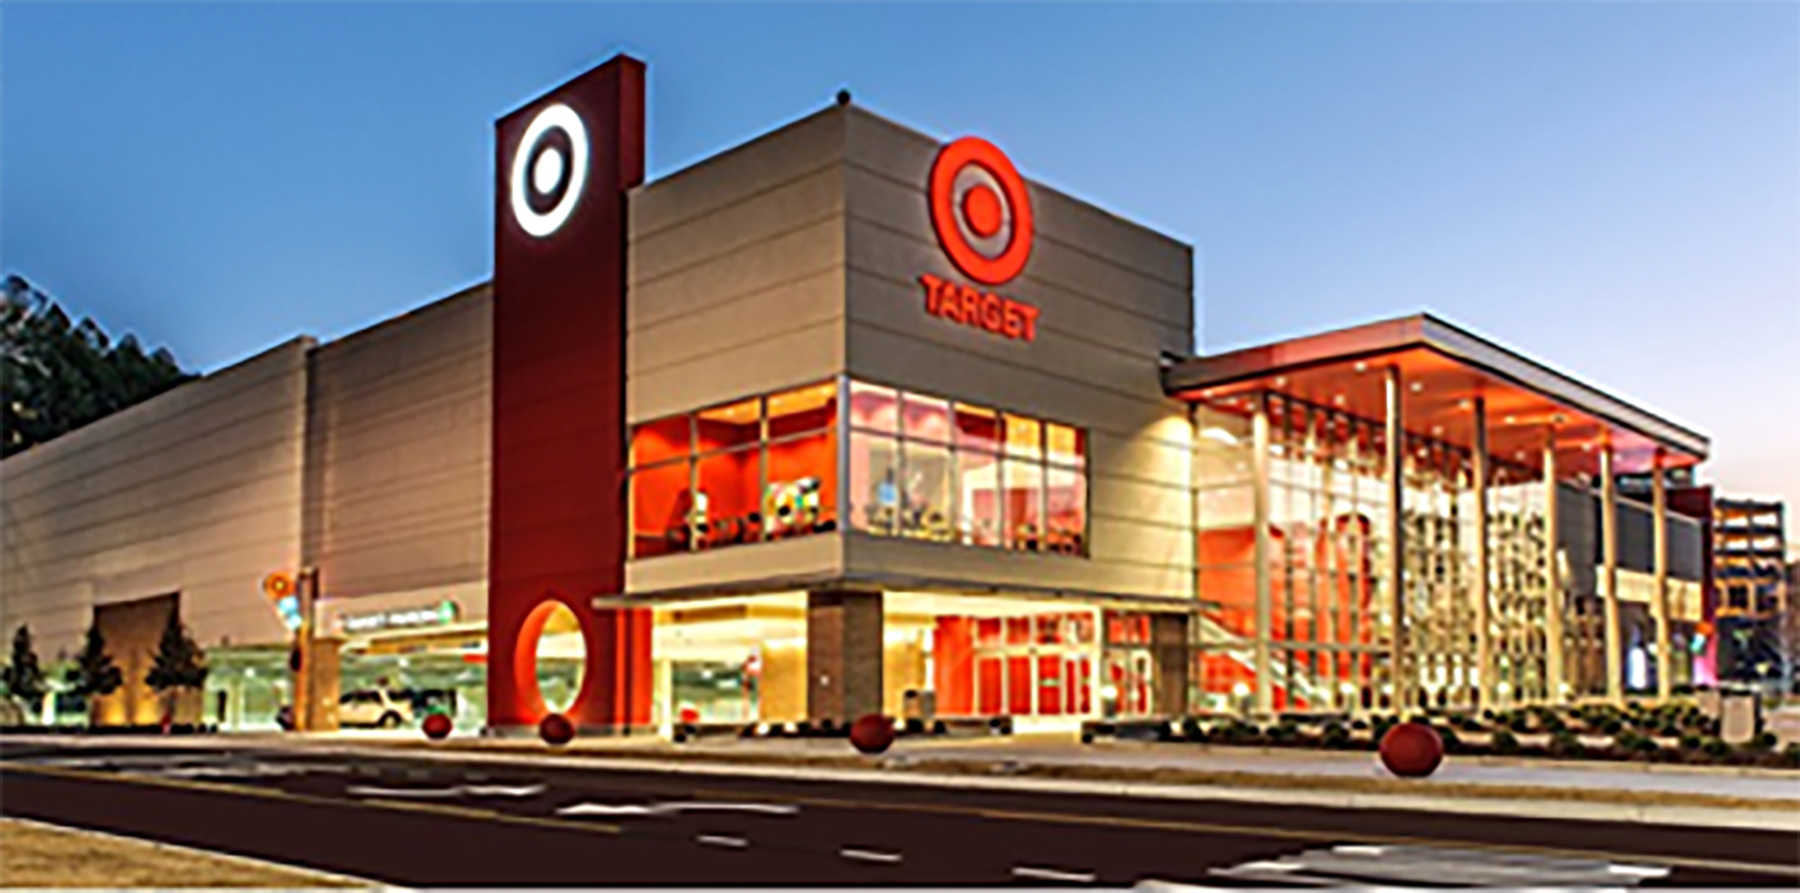 Target Store 2 - Outside Day